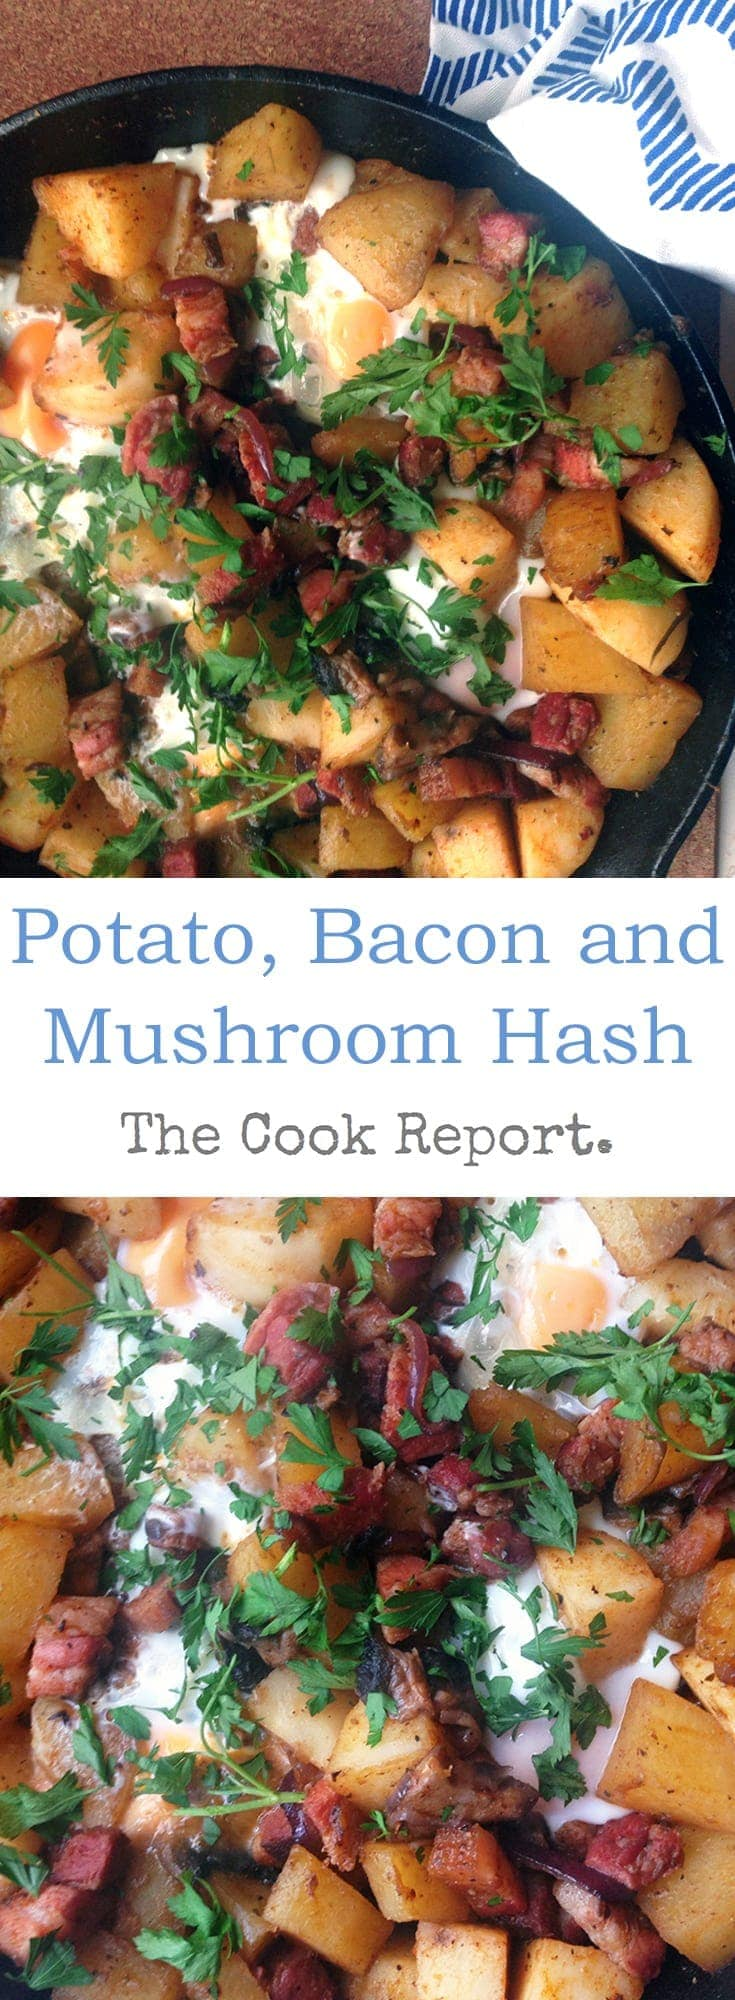 This potato, bacon and mushroom hash is a quick meal which works for breakfast, brunch, lunch and even dinner! The addition of paprika adds a great smoky flavour.